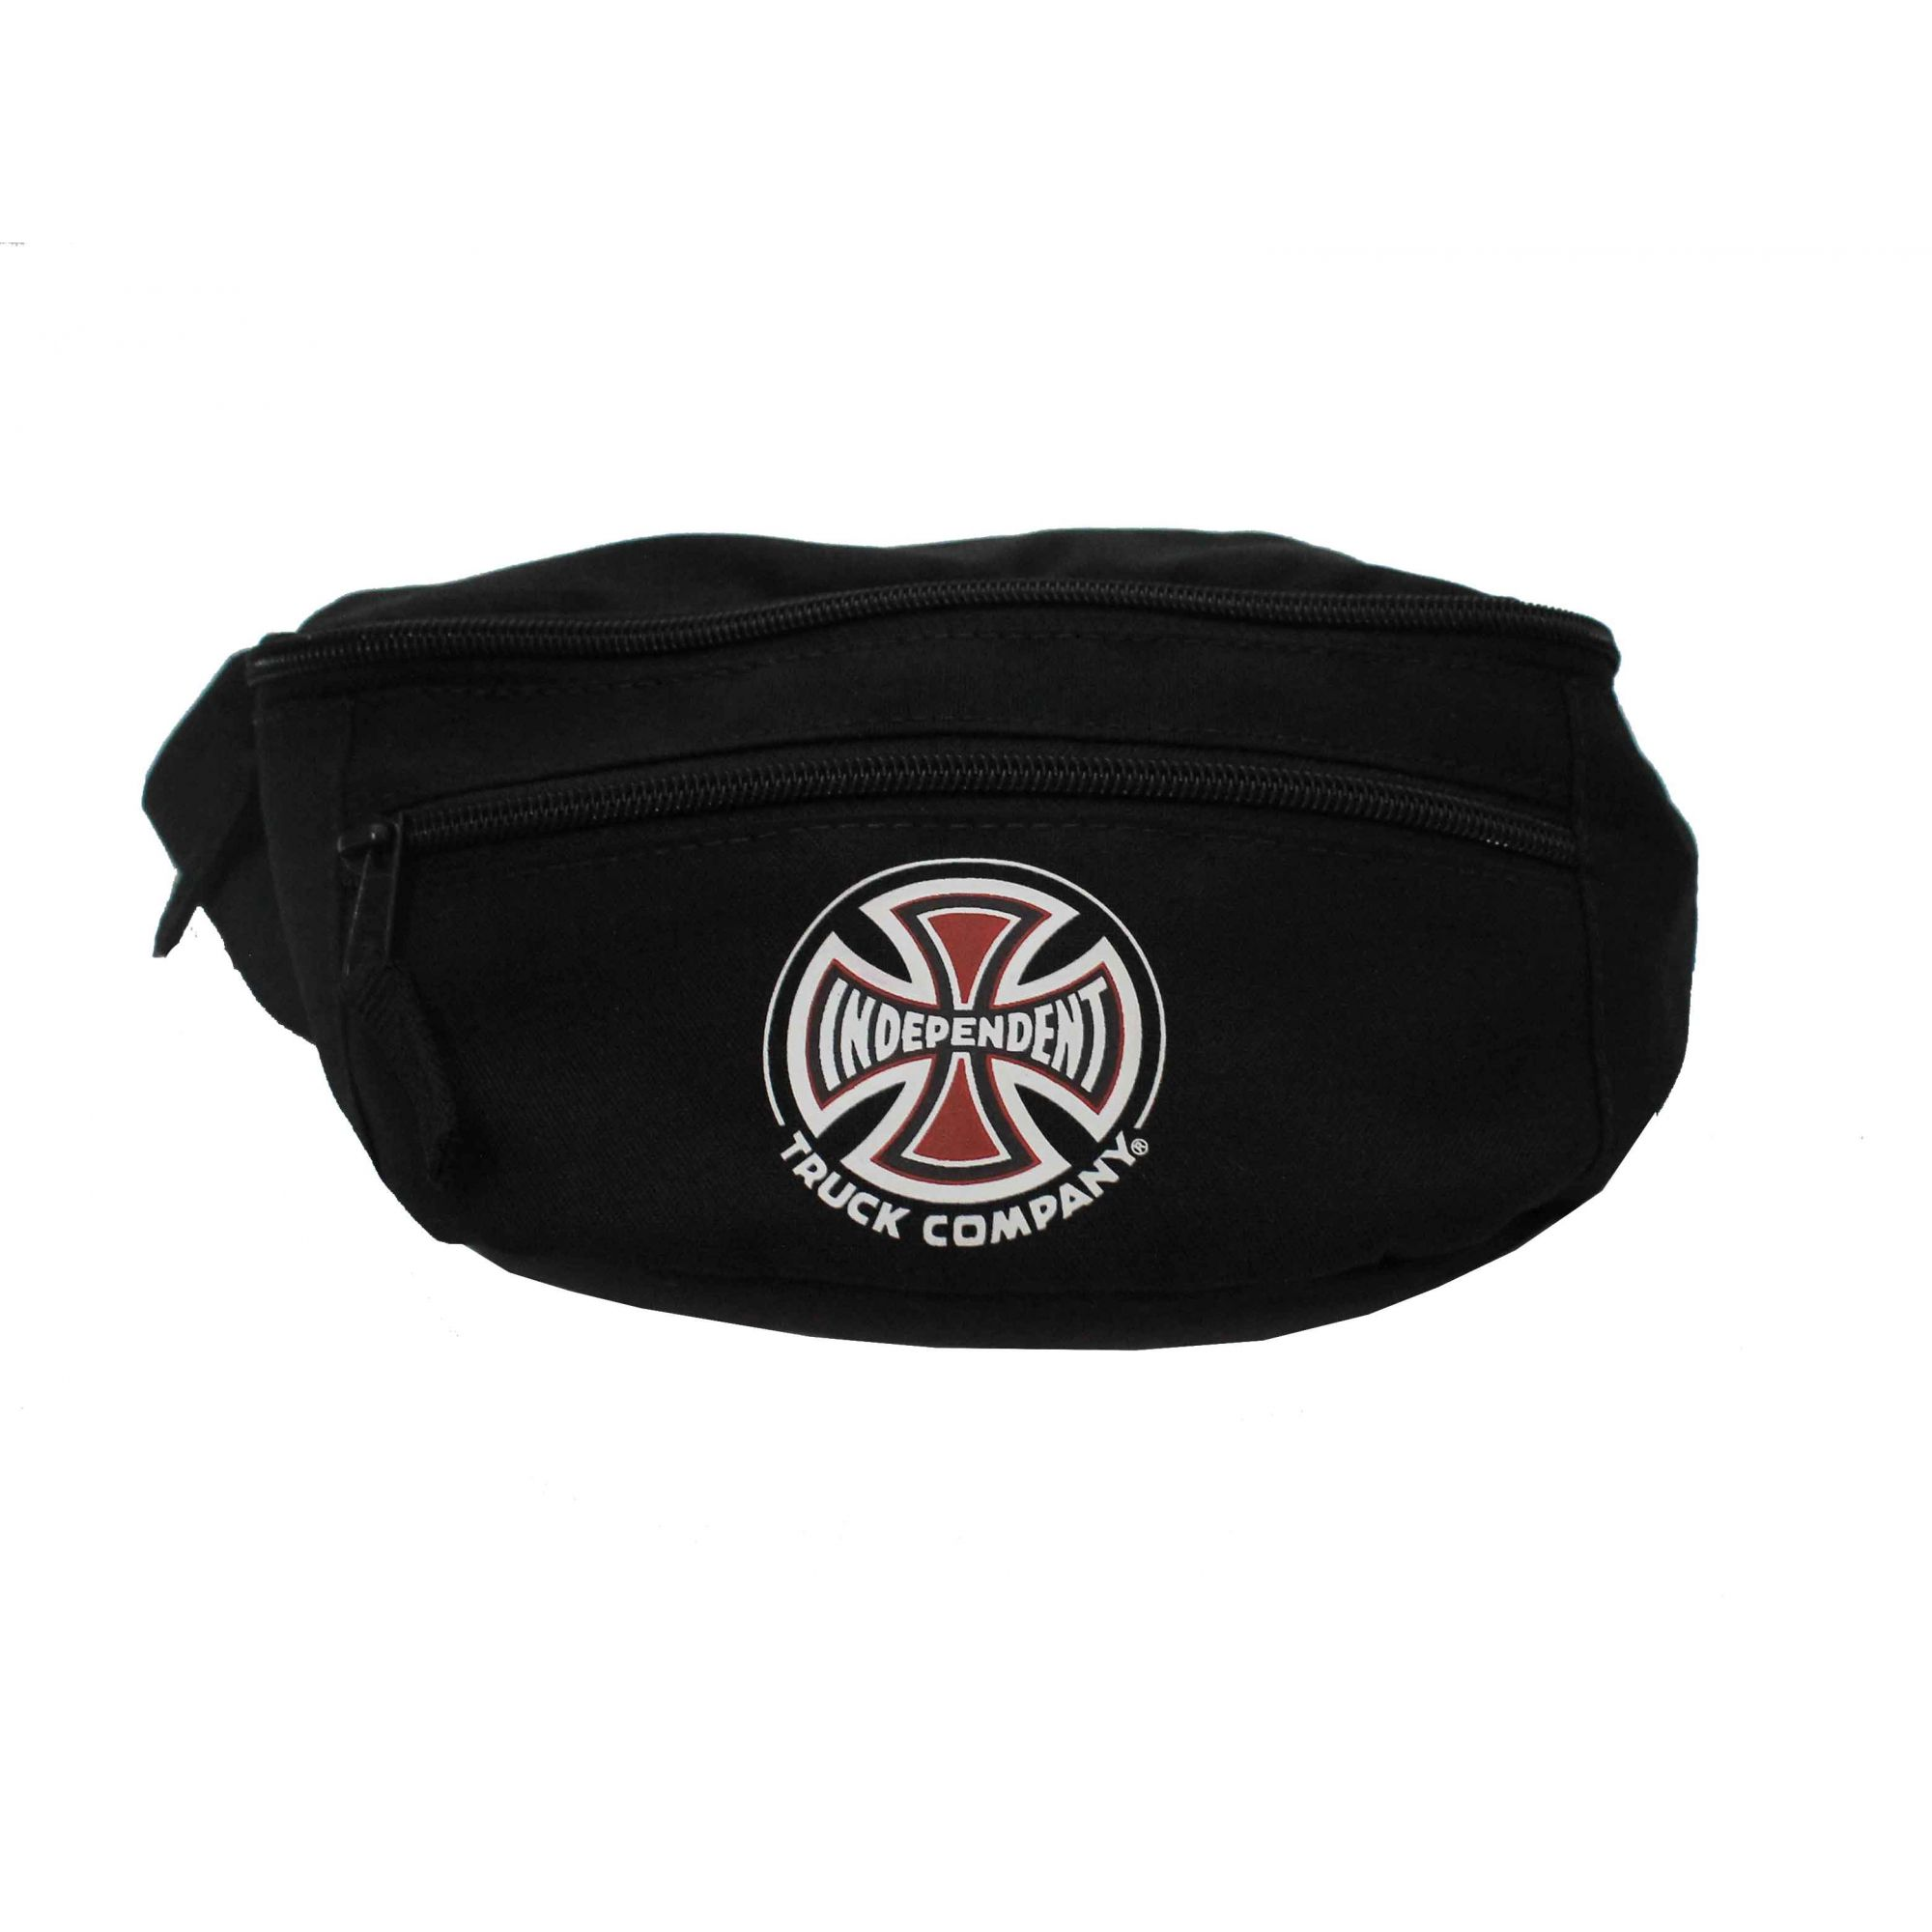 Pochete Independent Truck Company Bag Pack Black